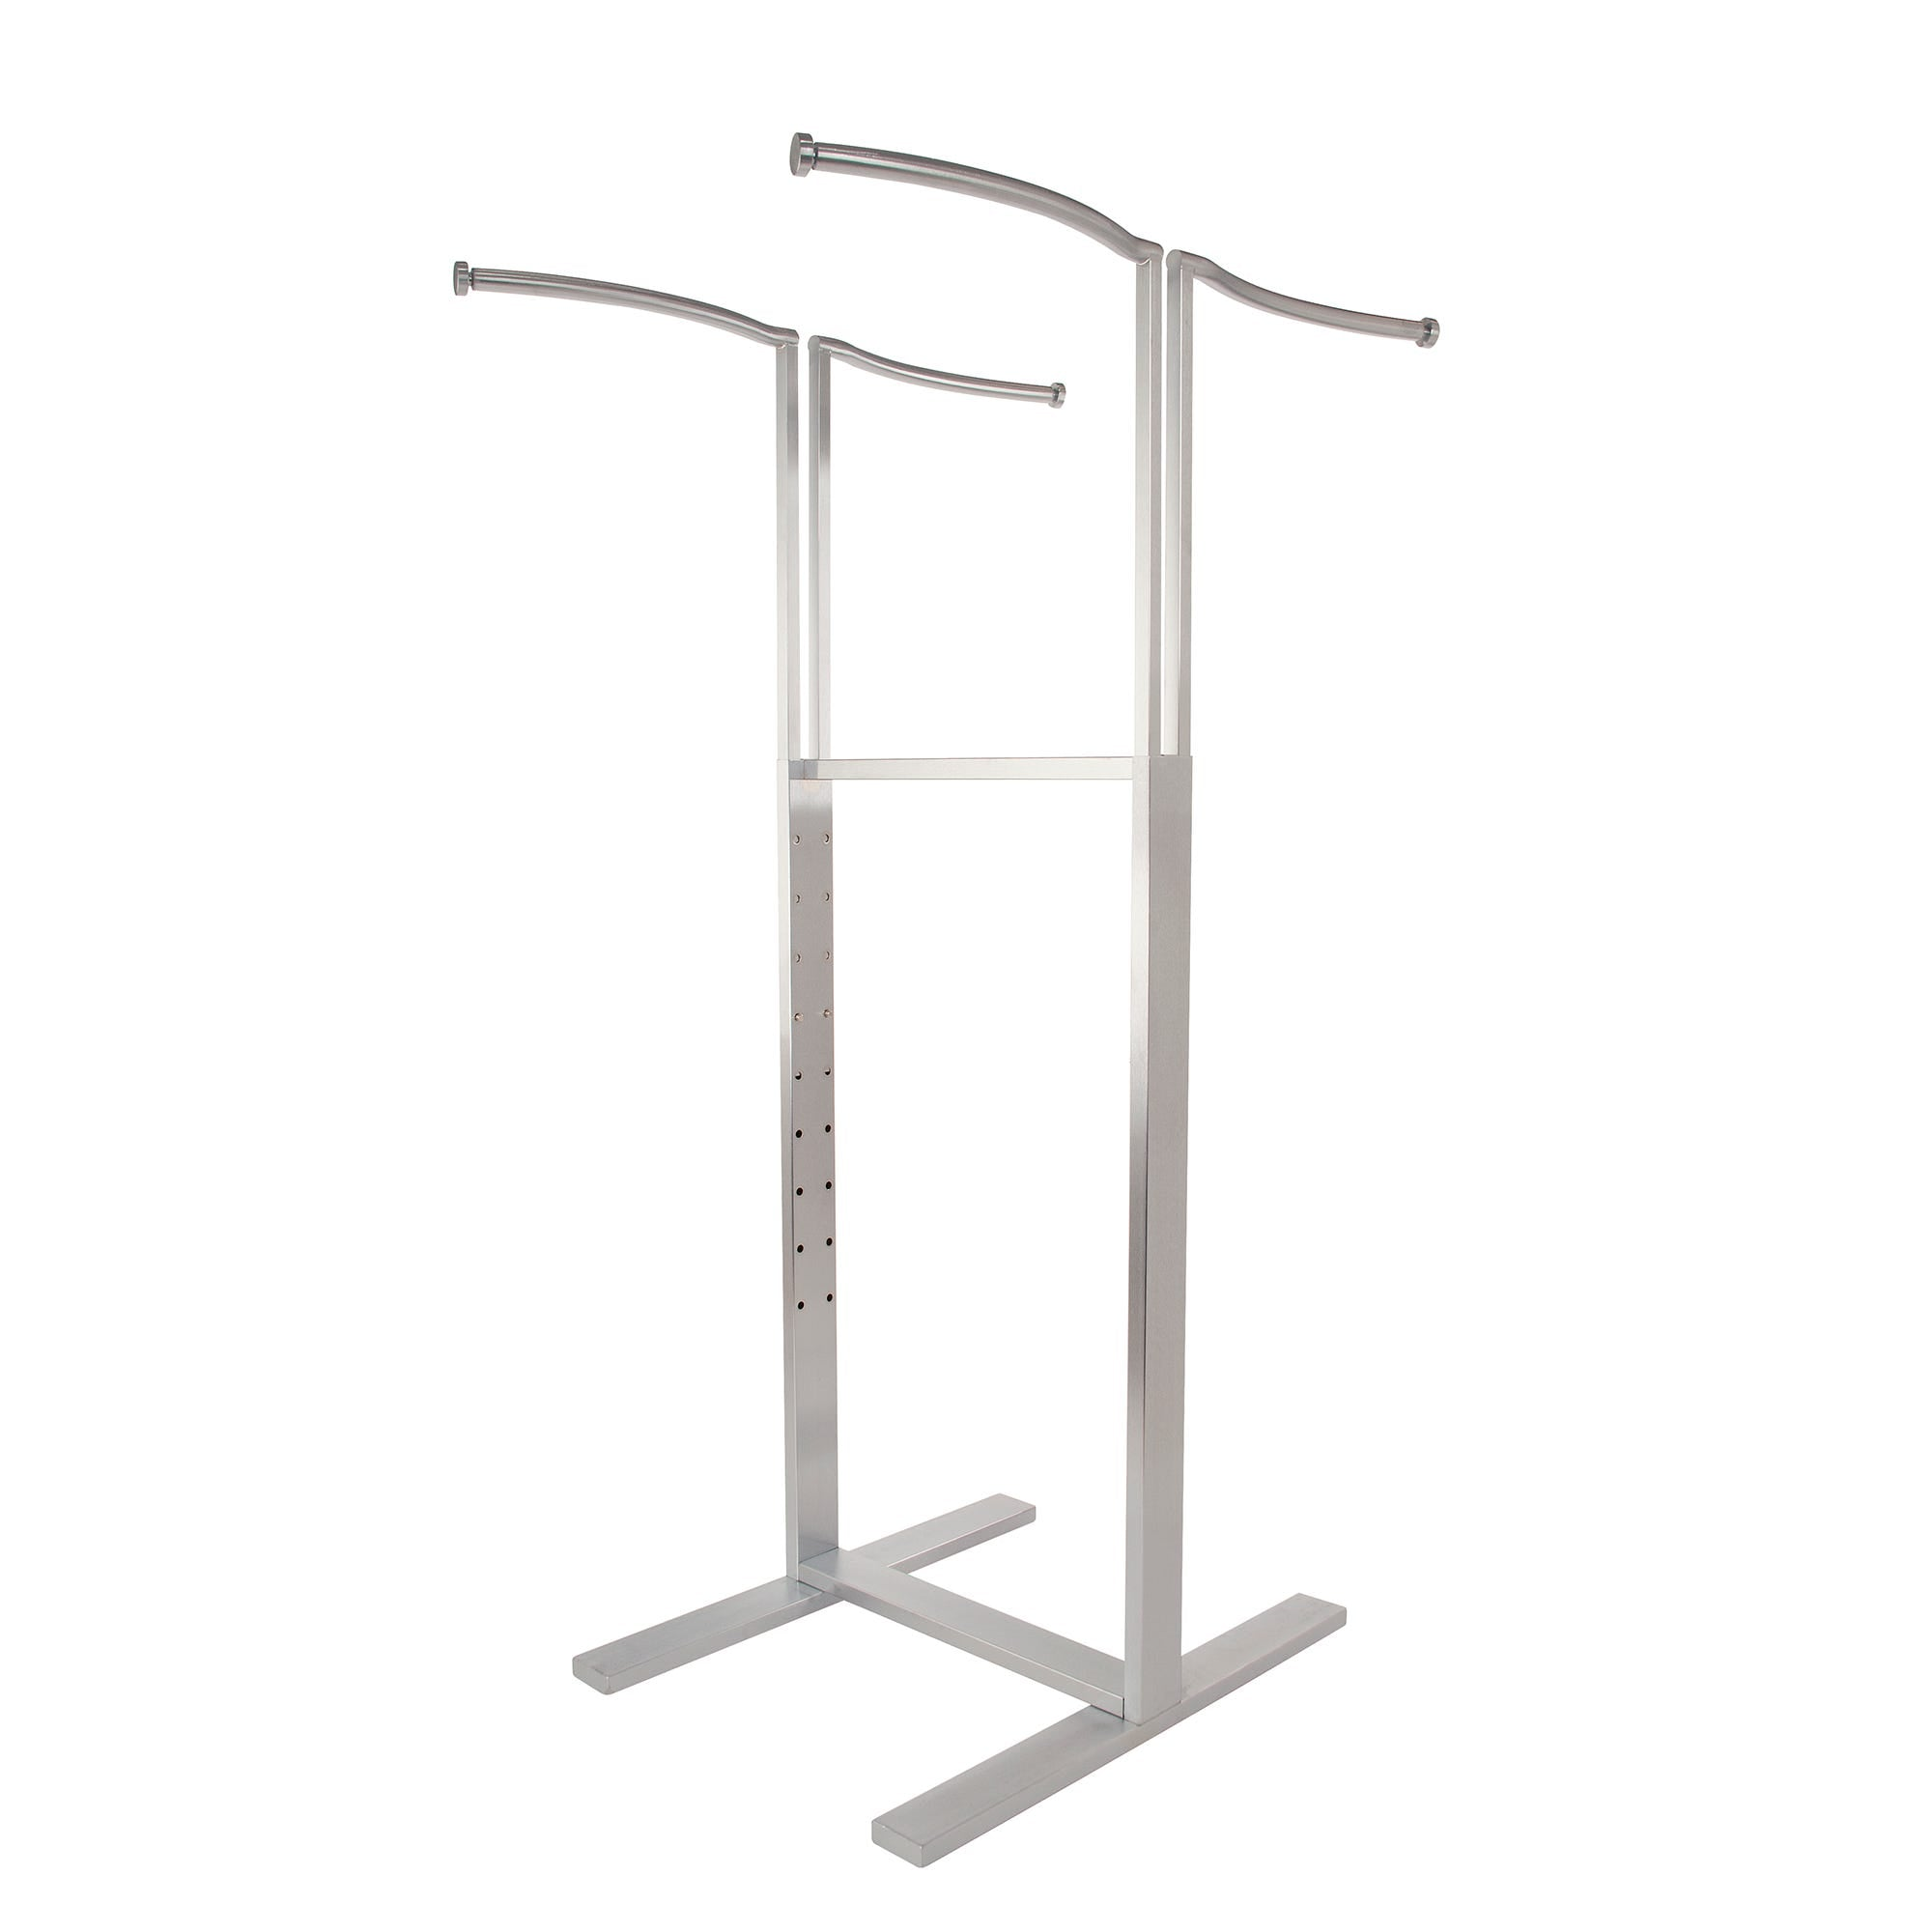 Econoco Adjustable 4-way Merchandiser with S-Shaped Hang Rail